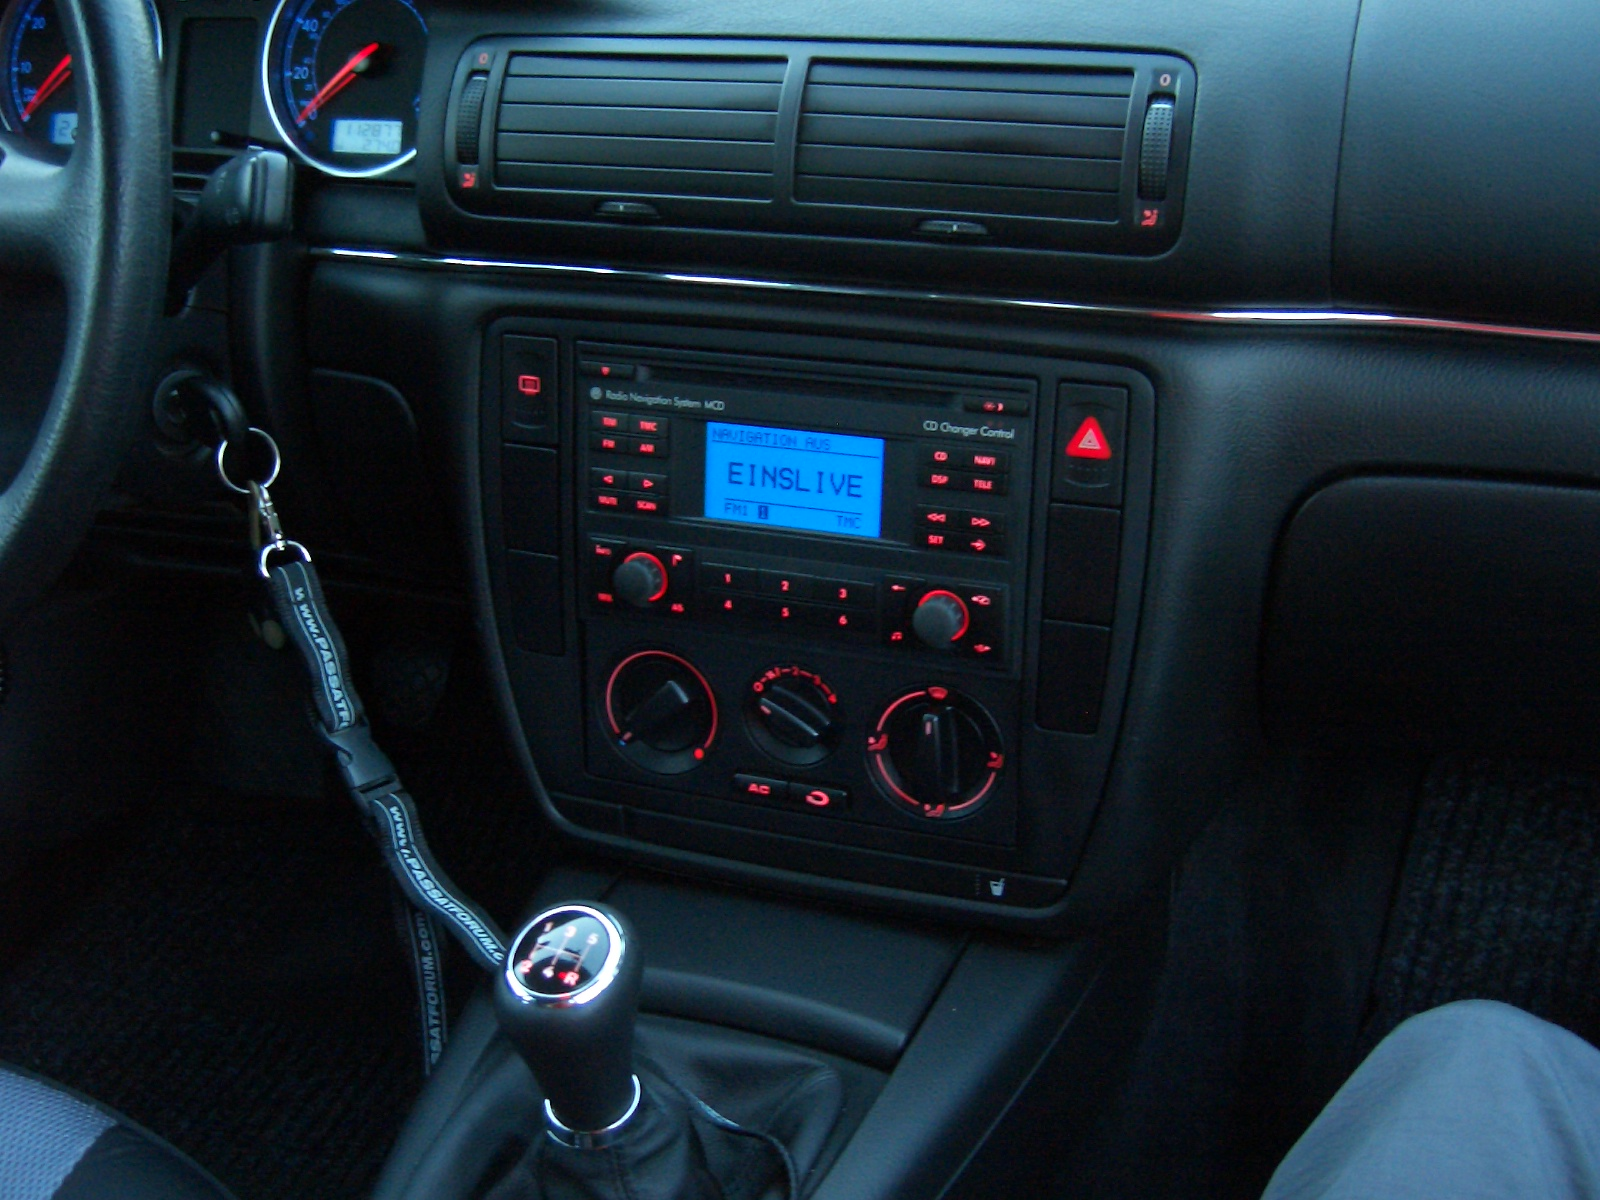 vw radio voor golf iv. Black Bedroom Furniture Sets. Home Design Ideas